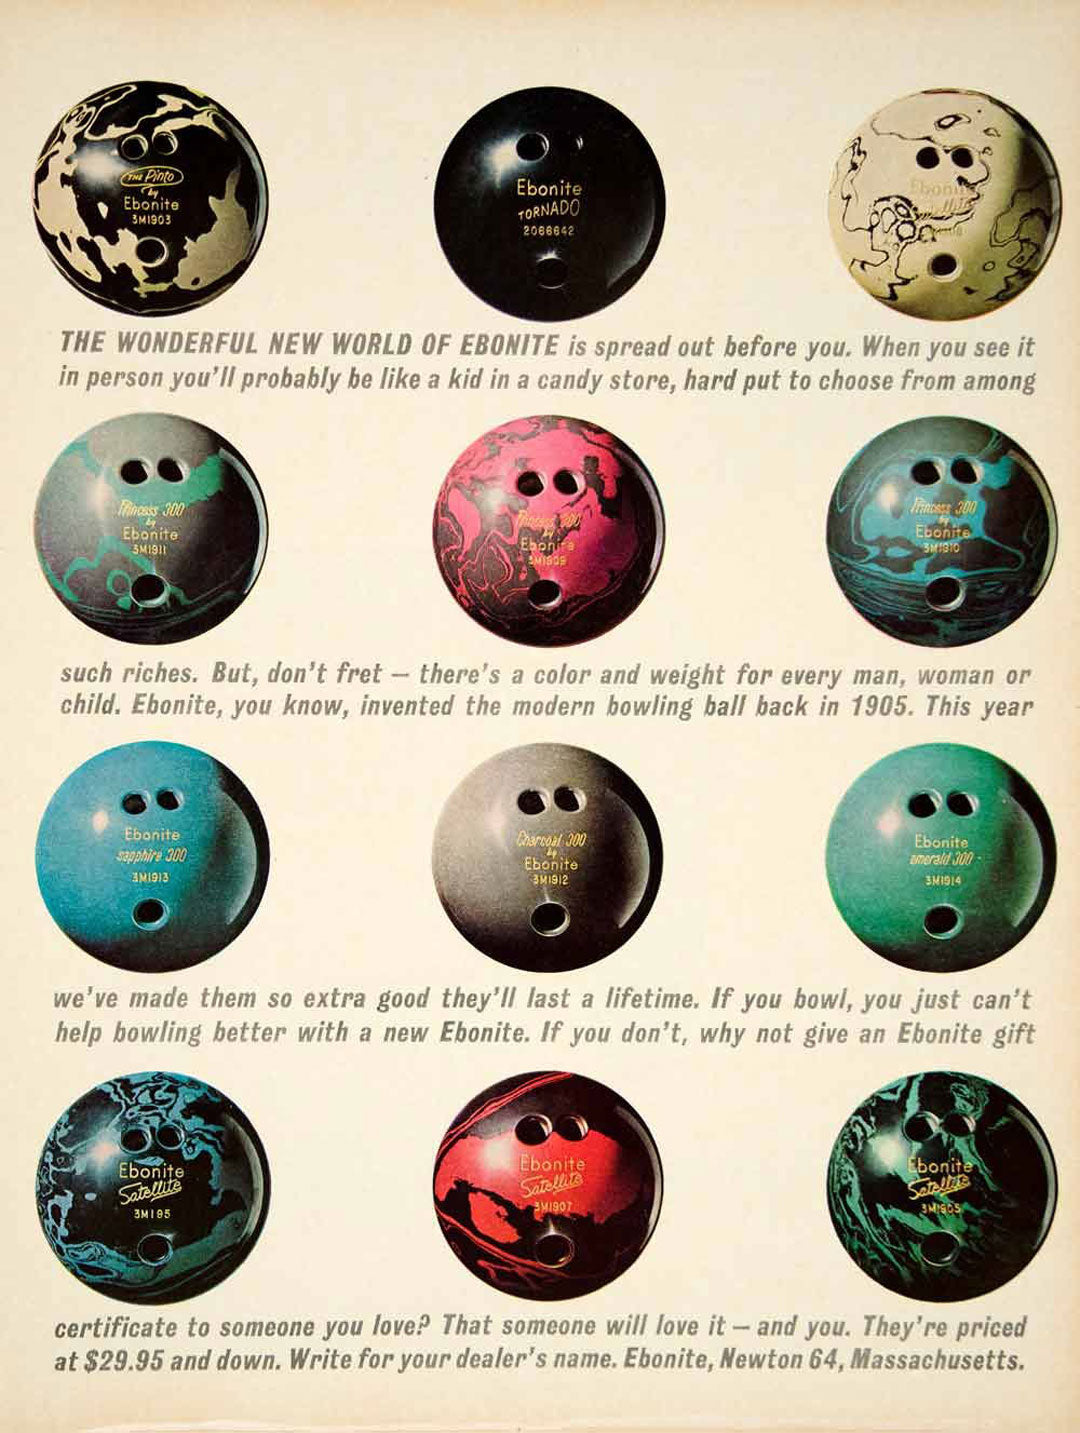 Vintage American poster for Ebonite bowling balls